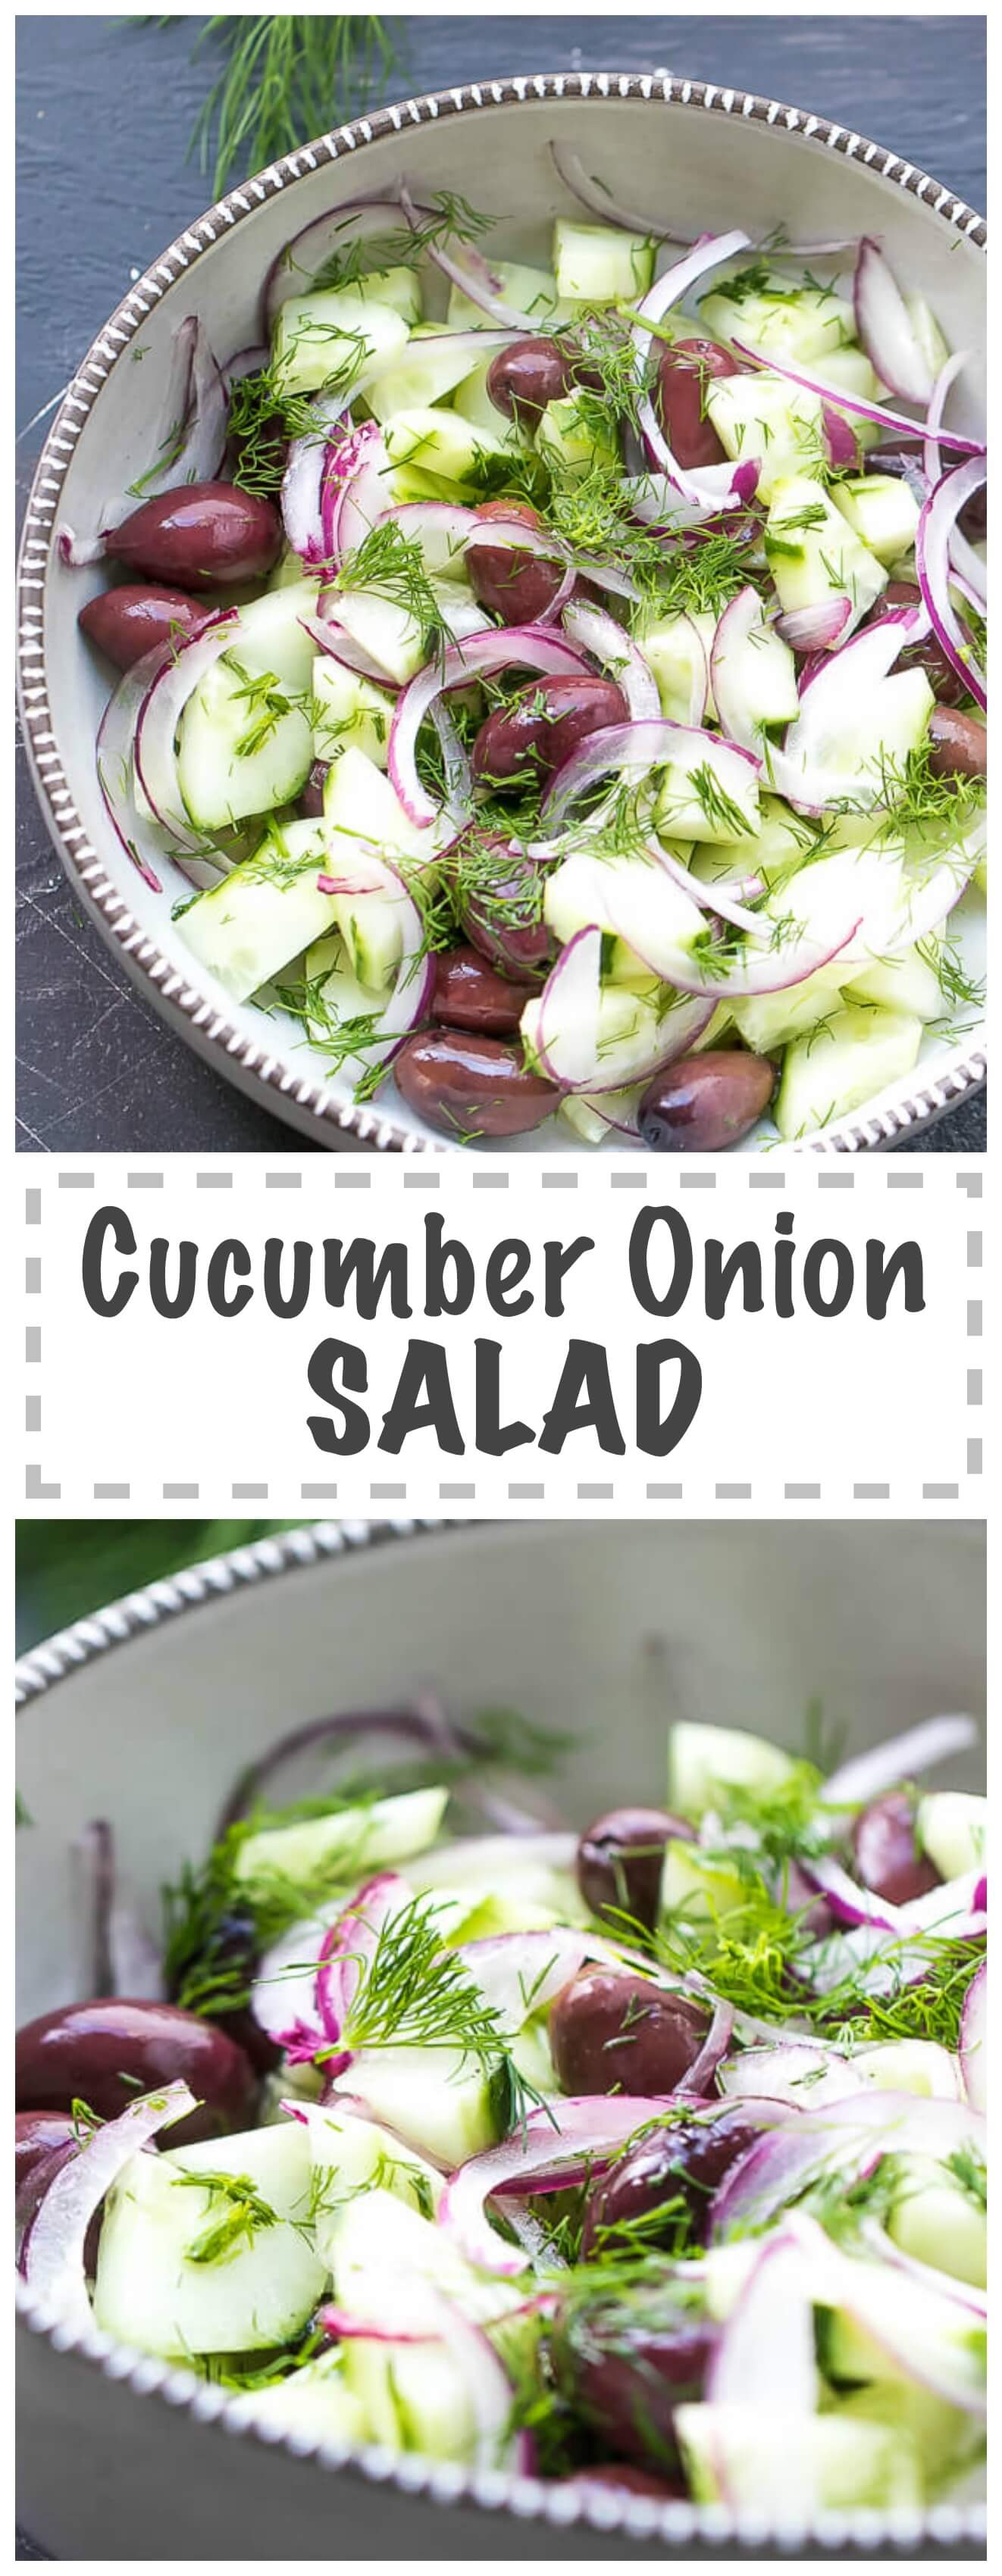 Cucumber And Onion Salad With Apple Cider Vinegar And Olives Cooking Lsl